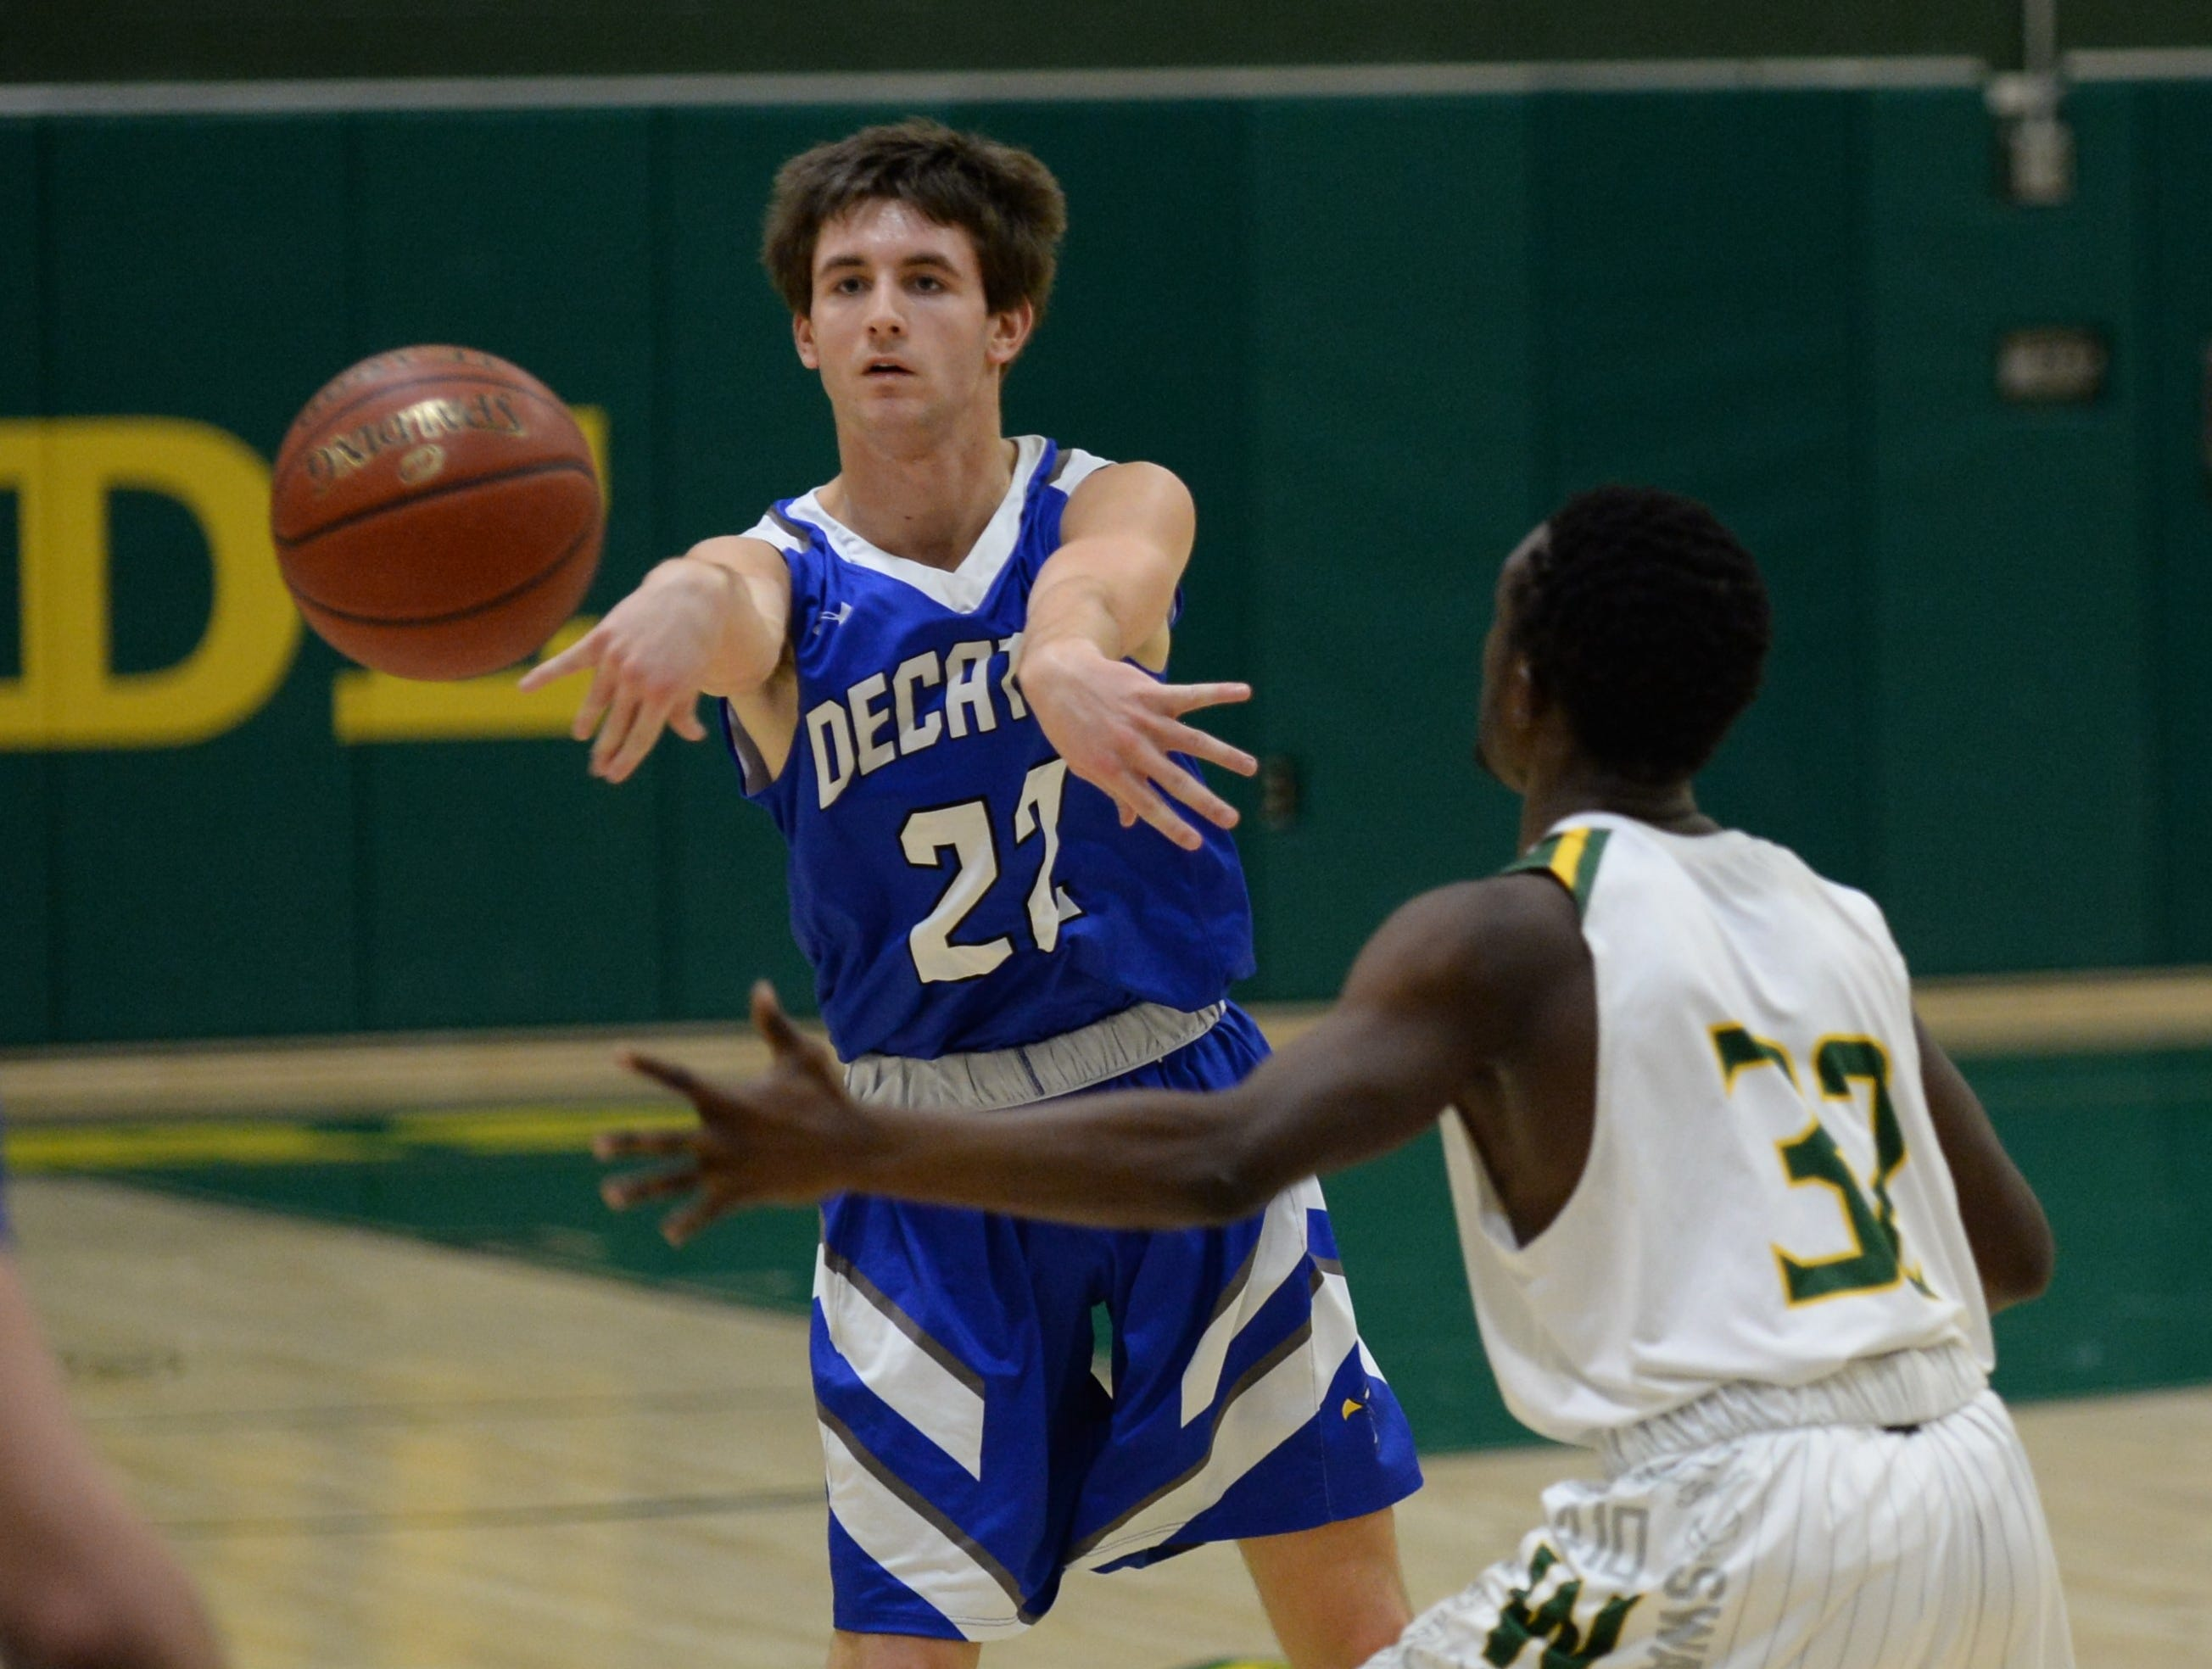 Stephen Decatur's Brett Berquist passes to a teammate against Mardela on Tuesday, Feb. 5, 2019.